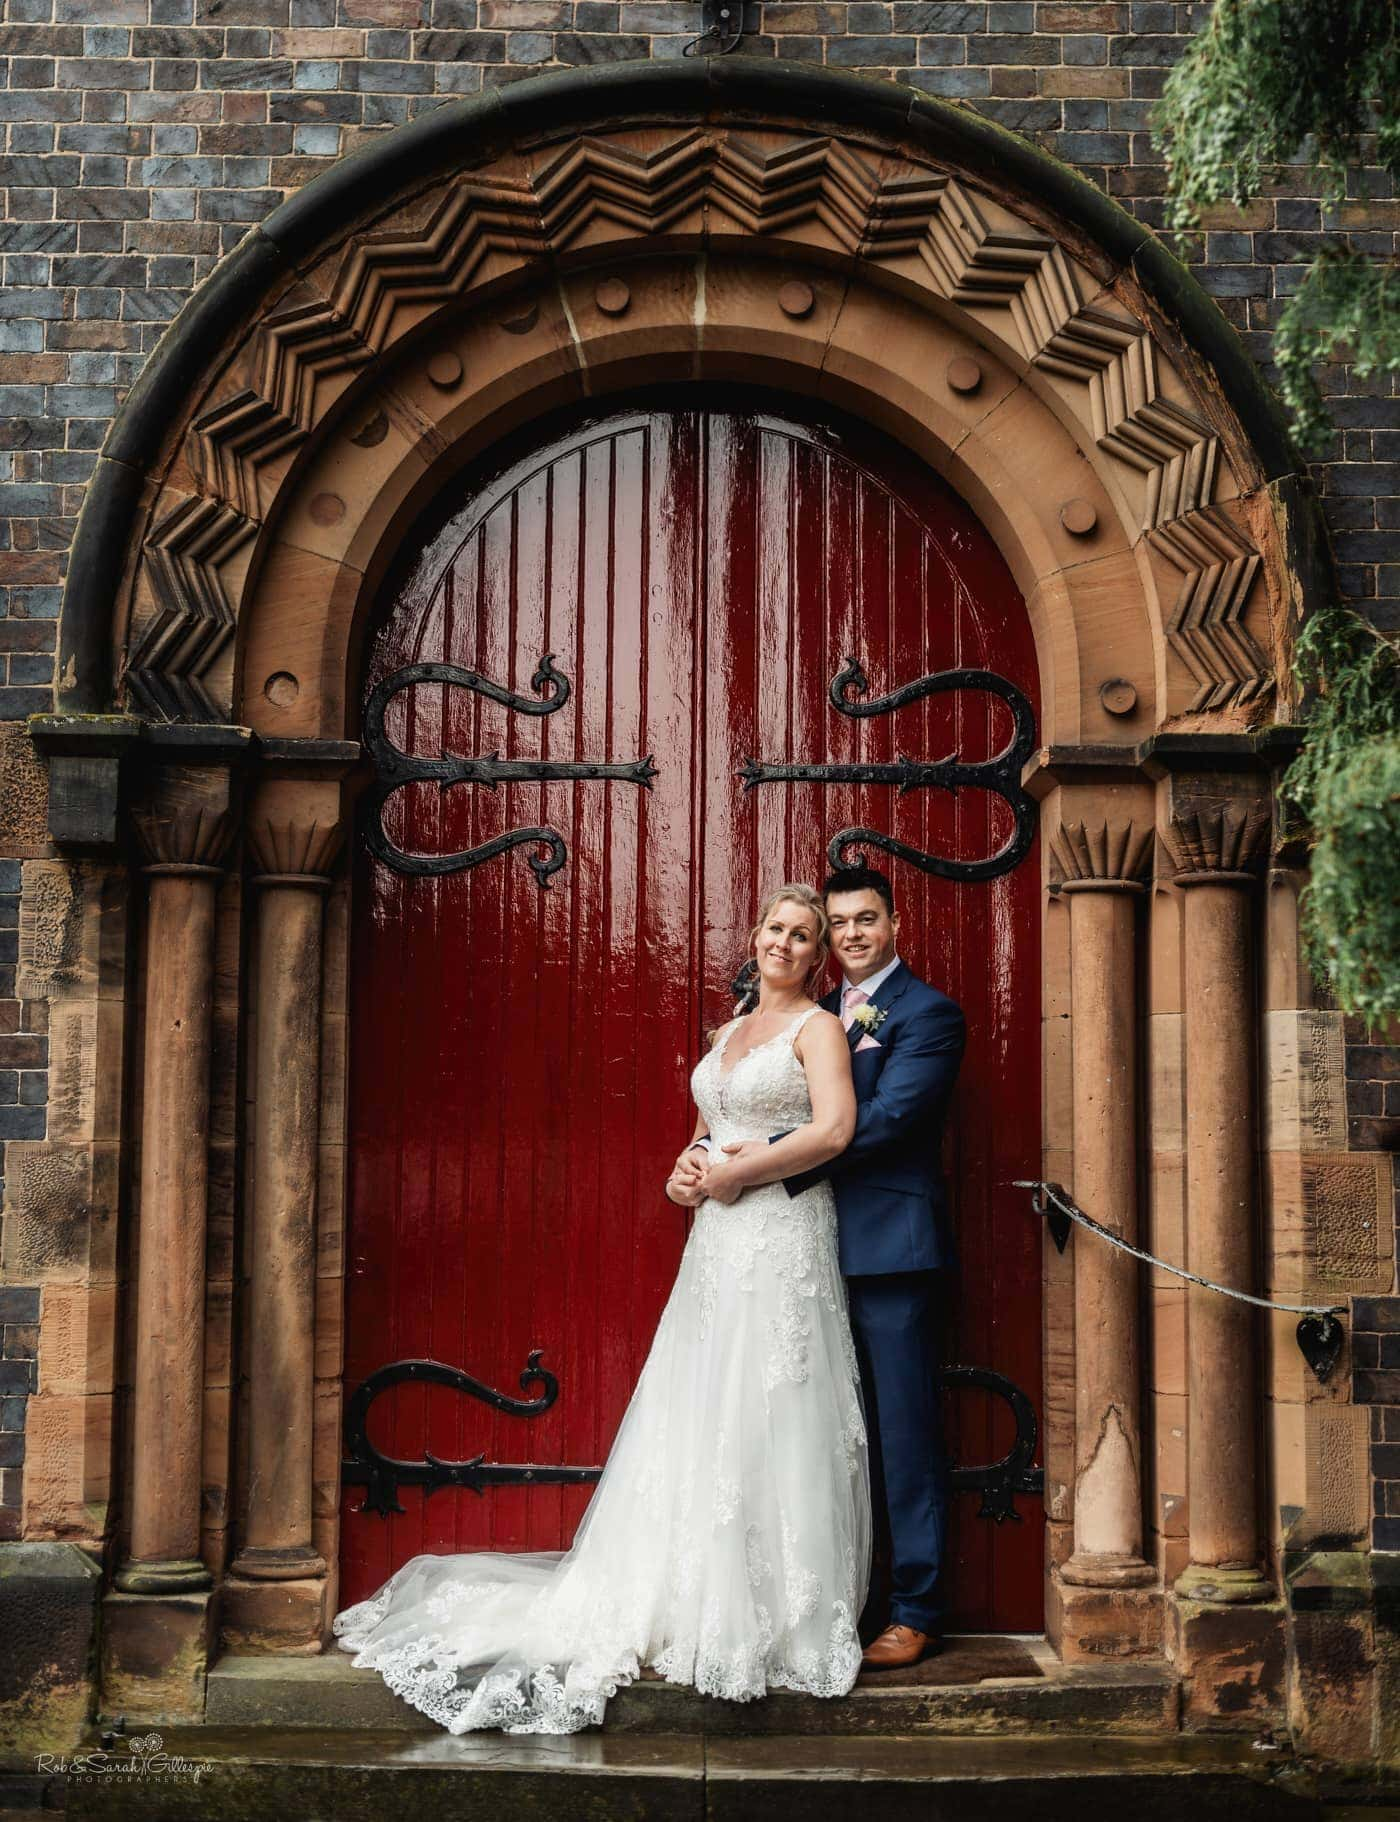 Bride and groom in beautiful doorway at St John's Church Walmley